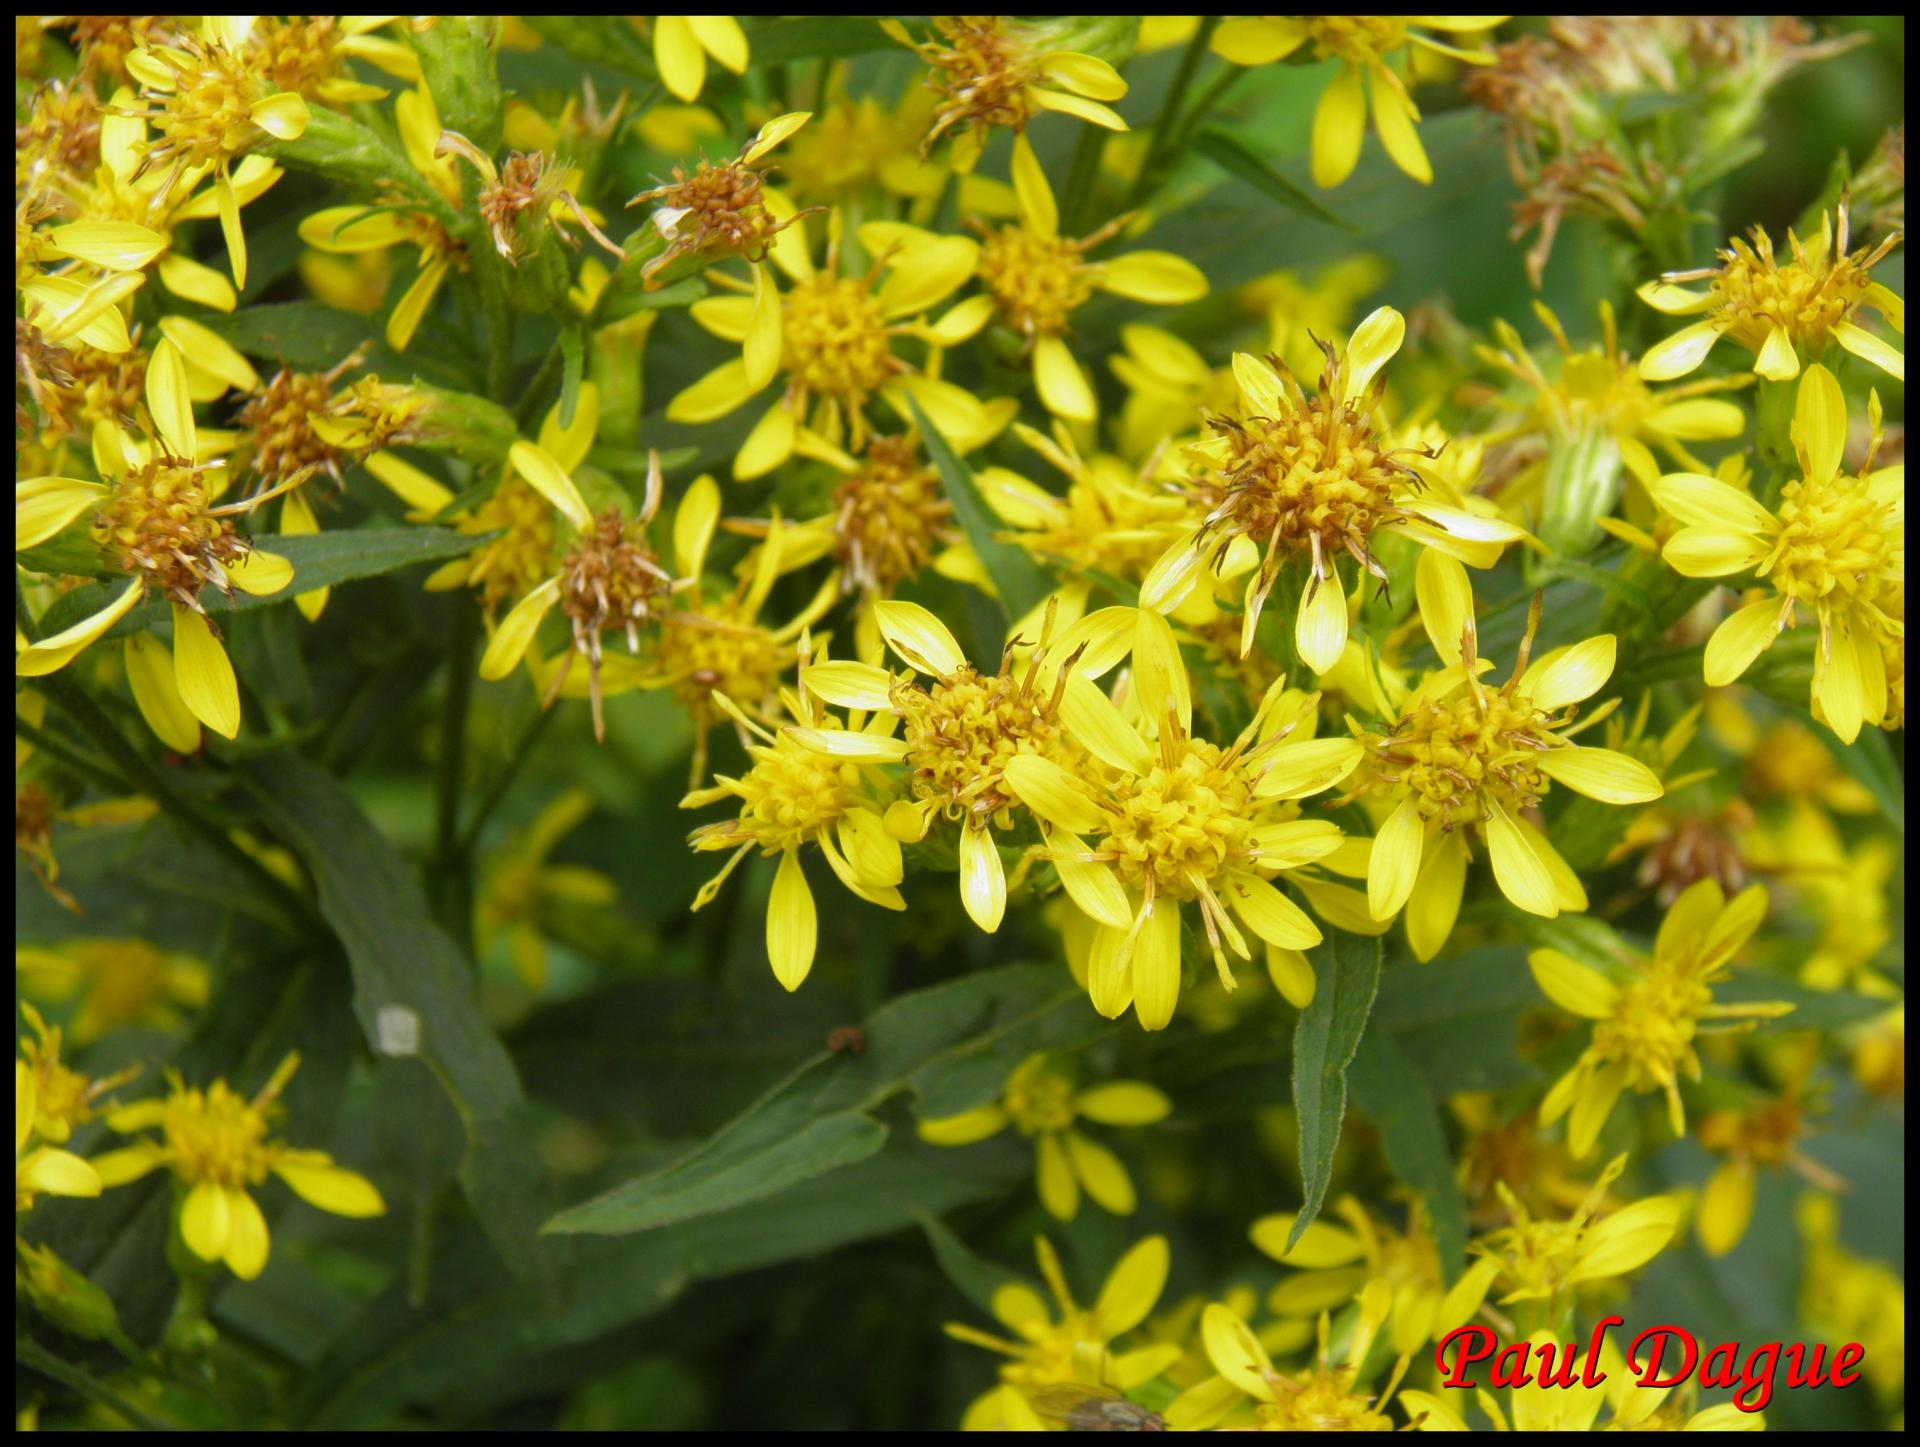 129 solidage verge d or solidago virgaurea 6 resultat 1